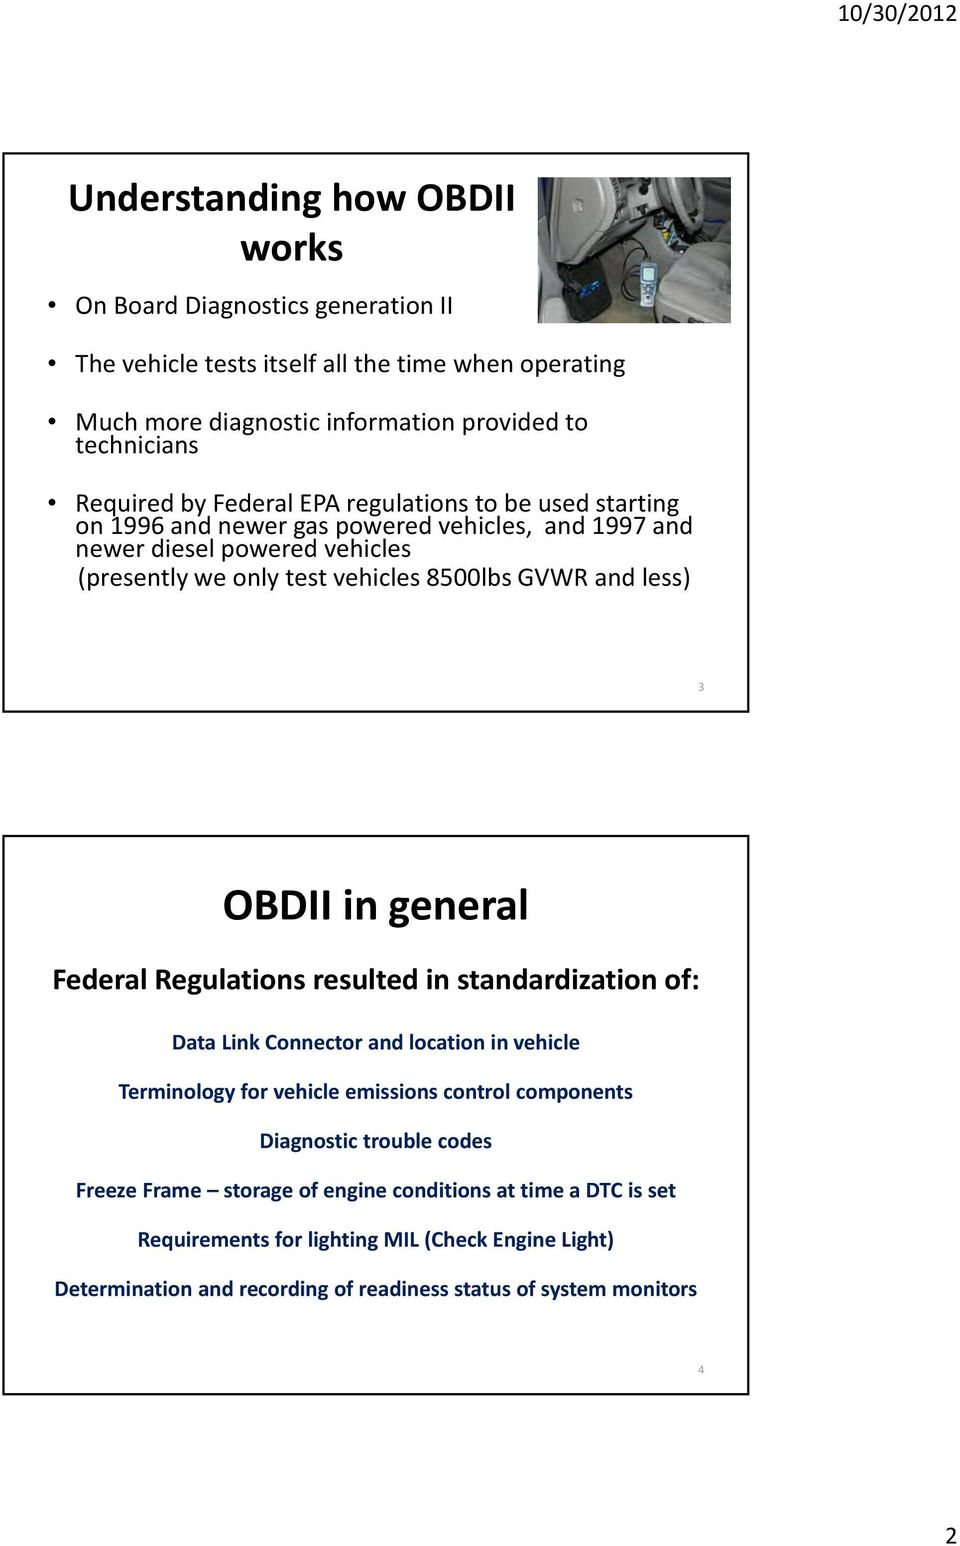 OBDII in general Federal Regulations resulted in standardization of: Data Link Connector and location in vehicle Terminology for vehicle emissions control components Diagnostic trouble